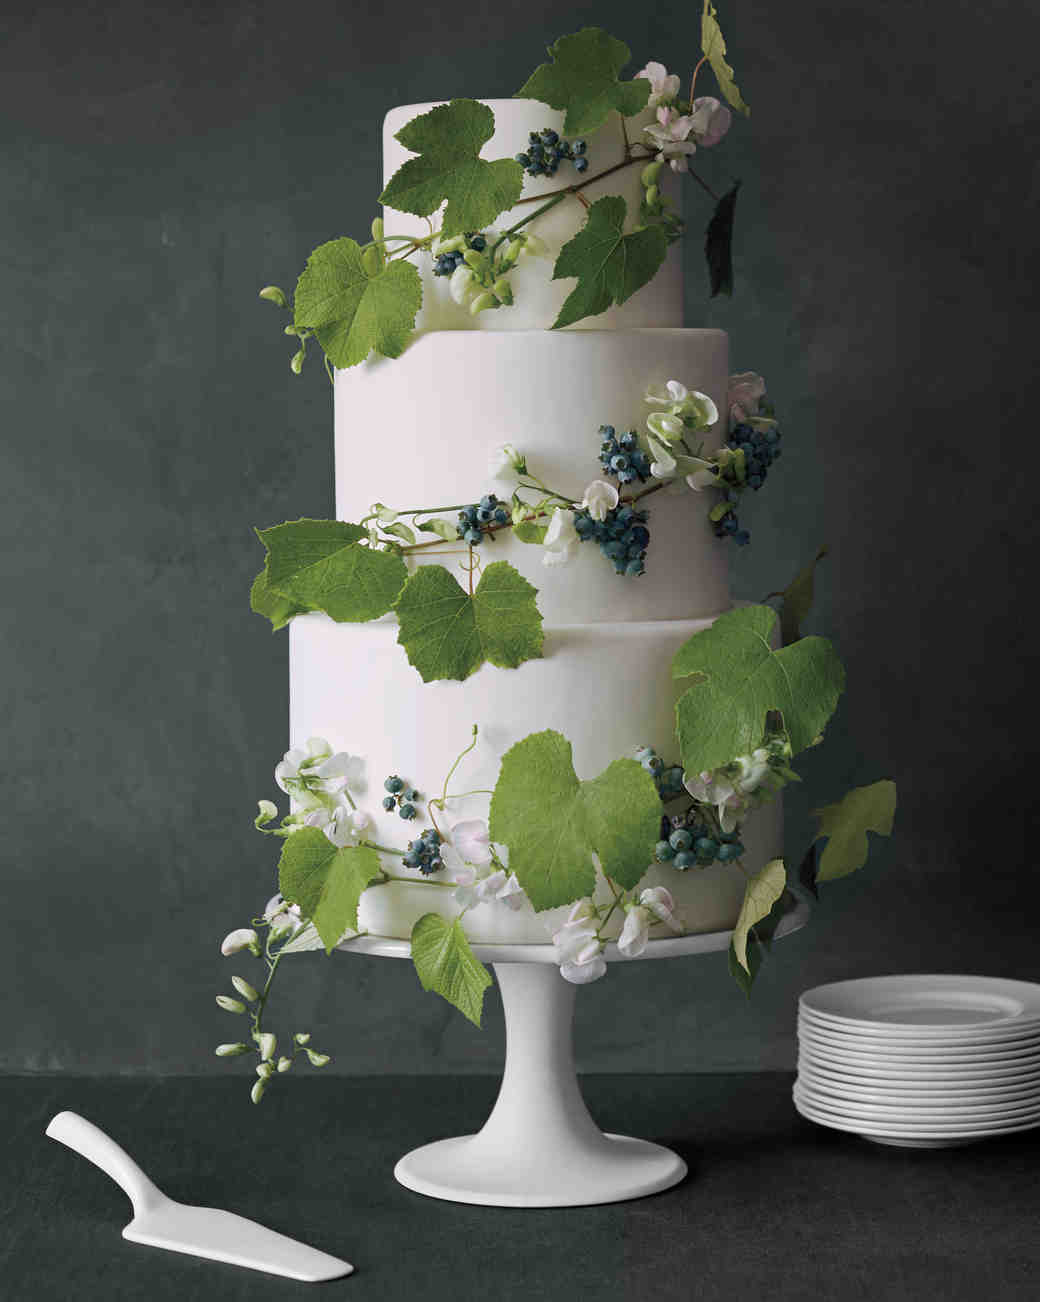 vine-wedding-cake-021-d112282-comp.jpg